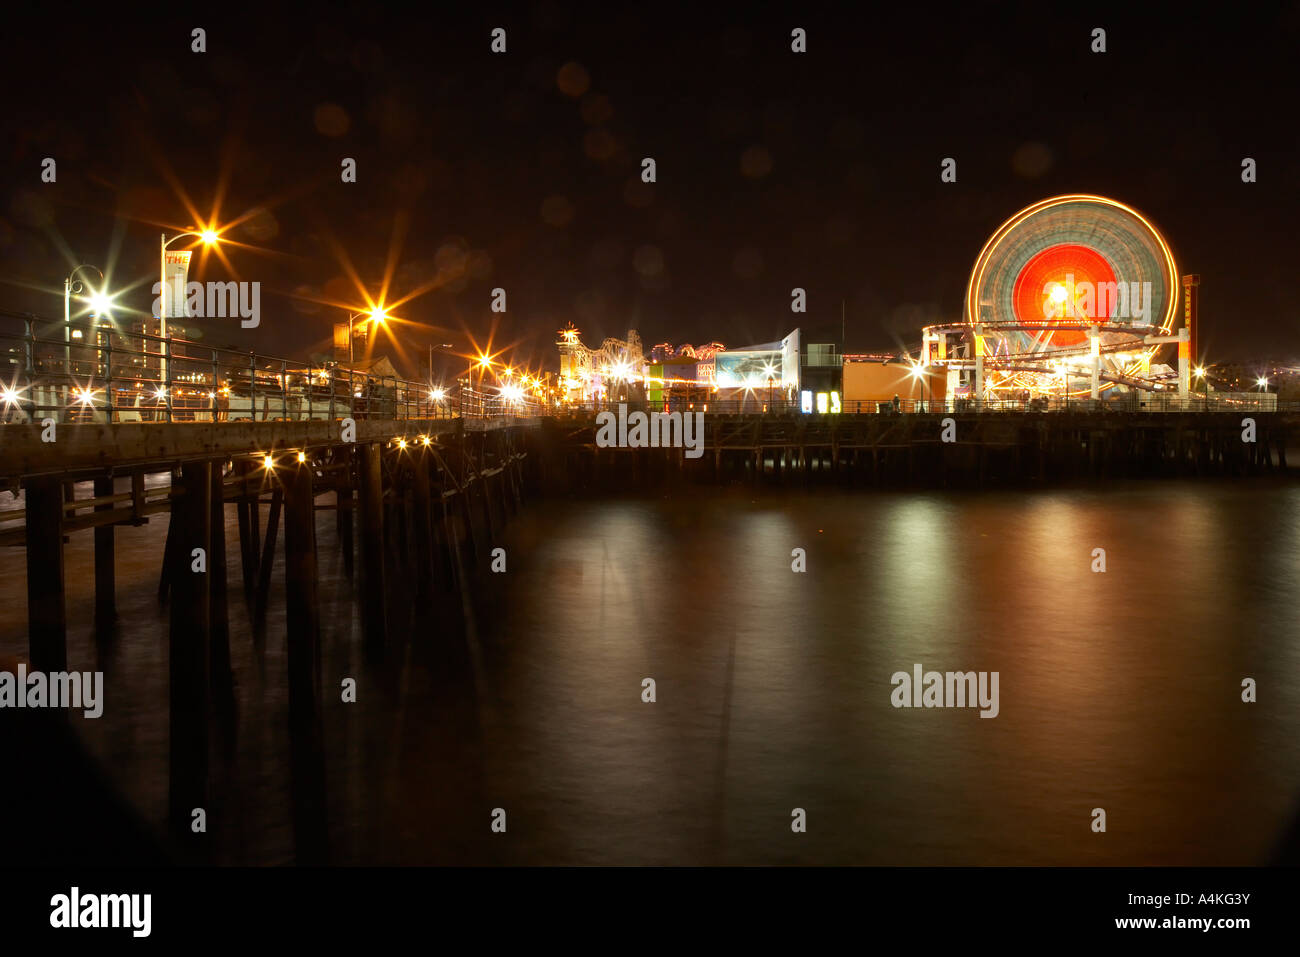 Long Exposure of Ferris Wheel on Pier, Santa Monica Los Angeles California, USA. - Stock Image